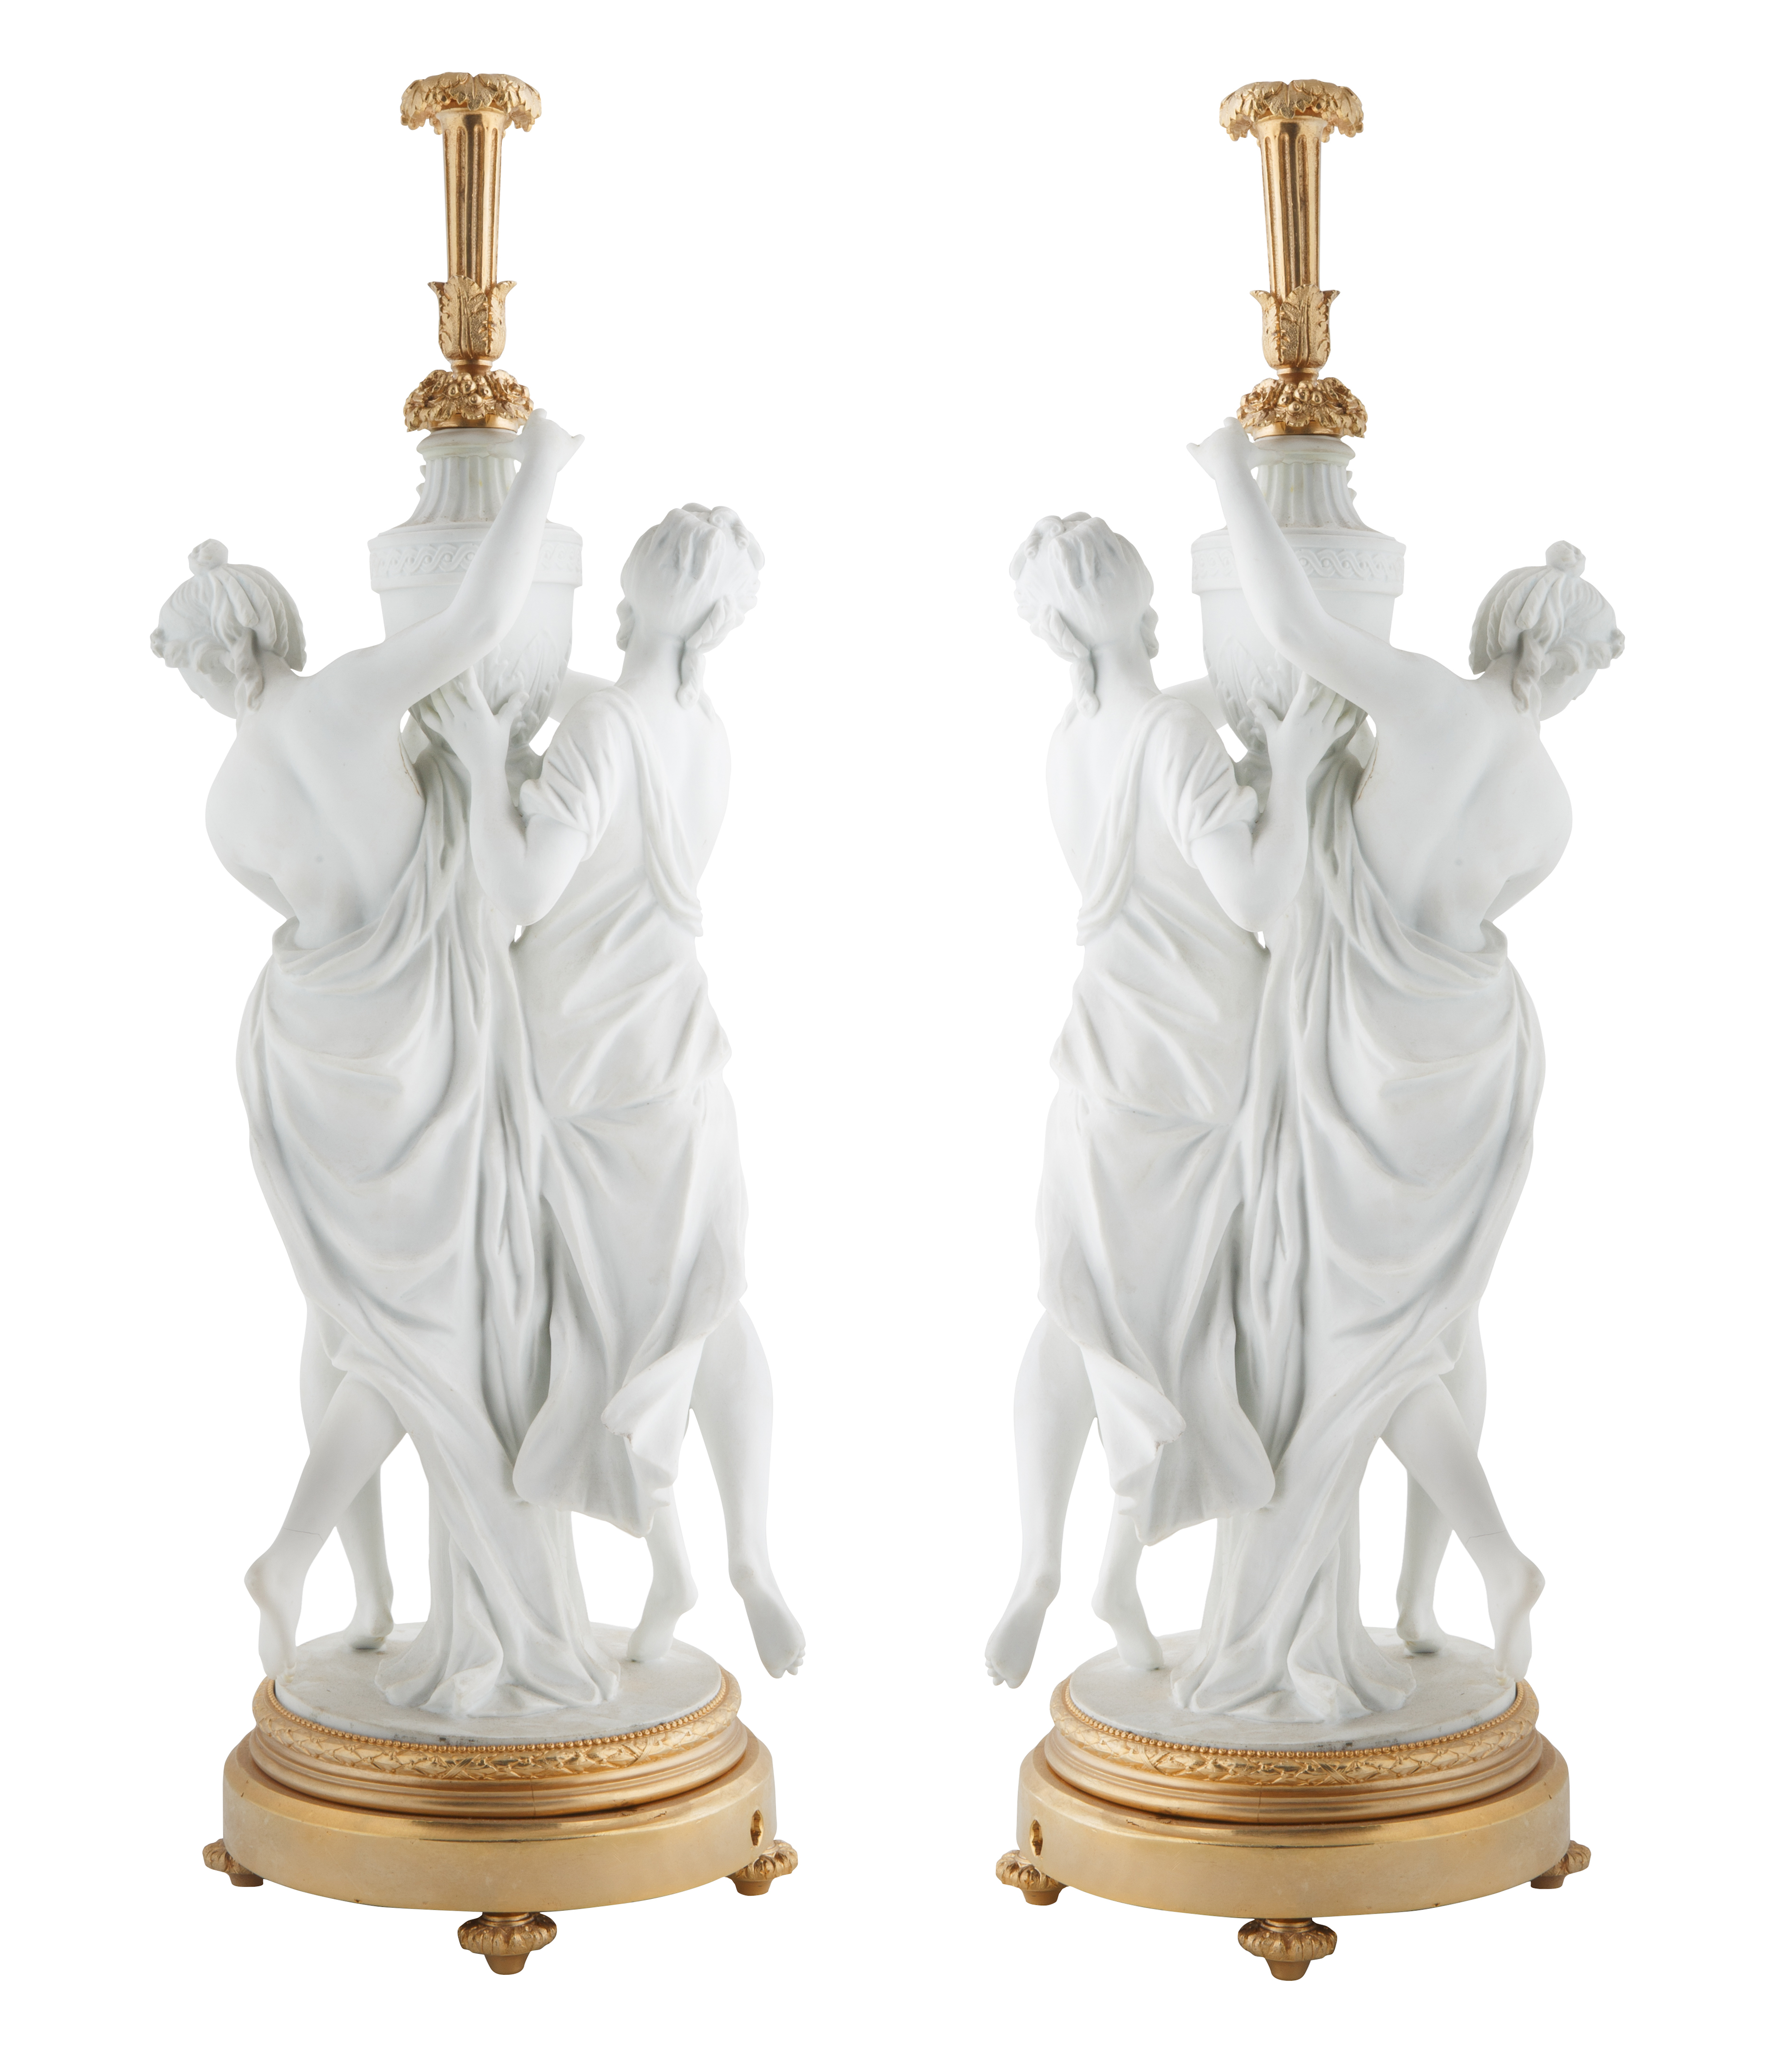 PAIR OF NEOCLASSICAL STYLE BISQUE CERAMIC MAIDEN LAMPS - Image 2 of 3